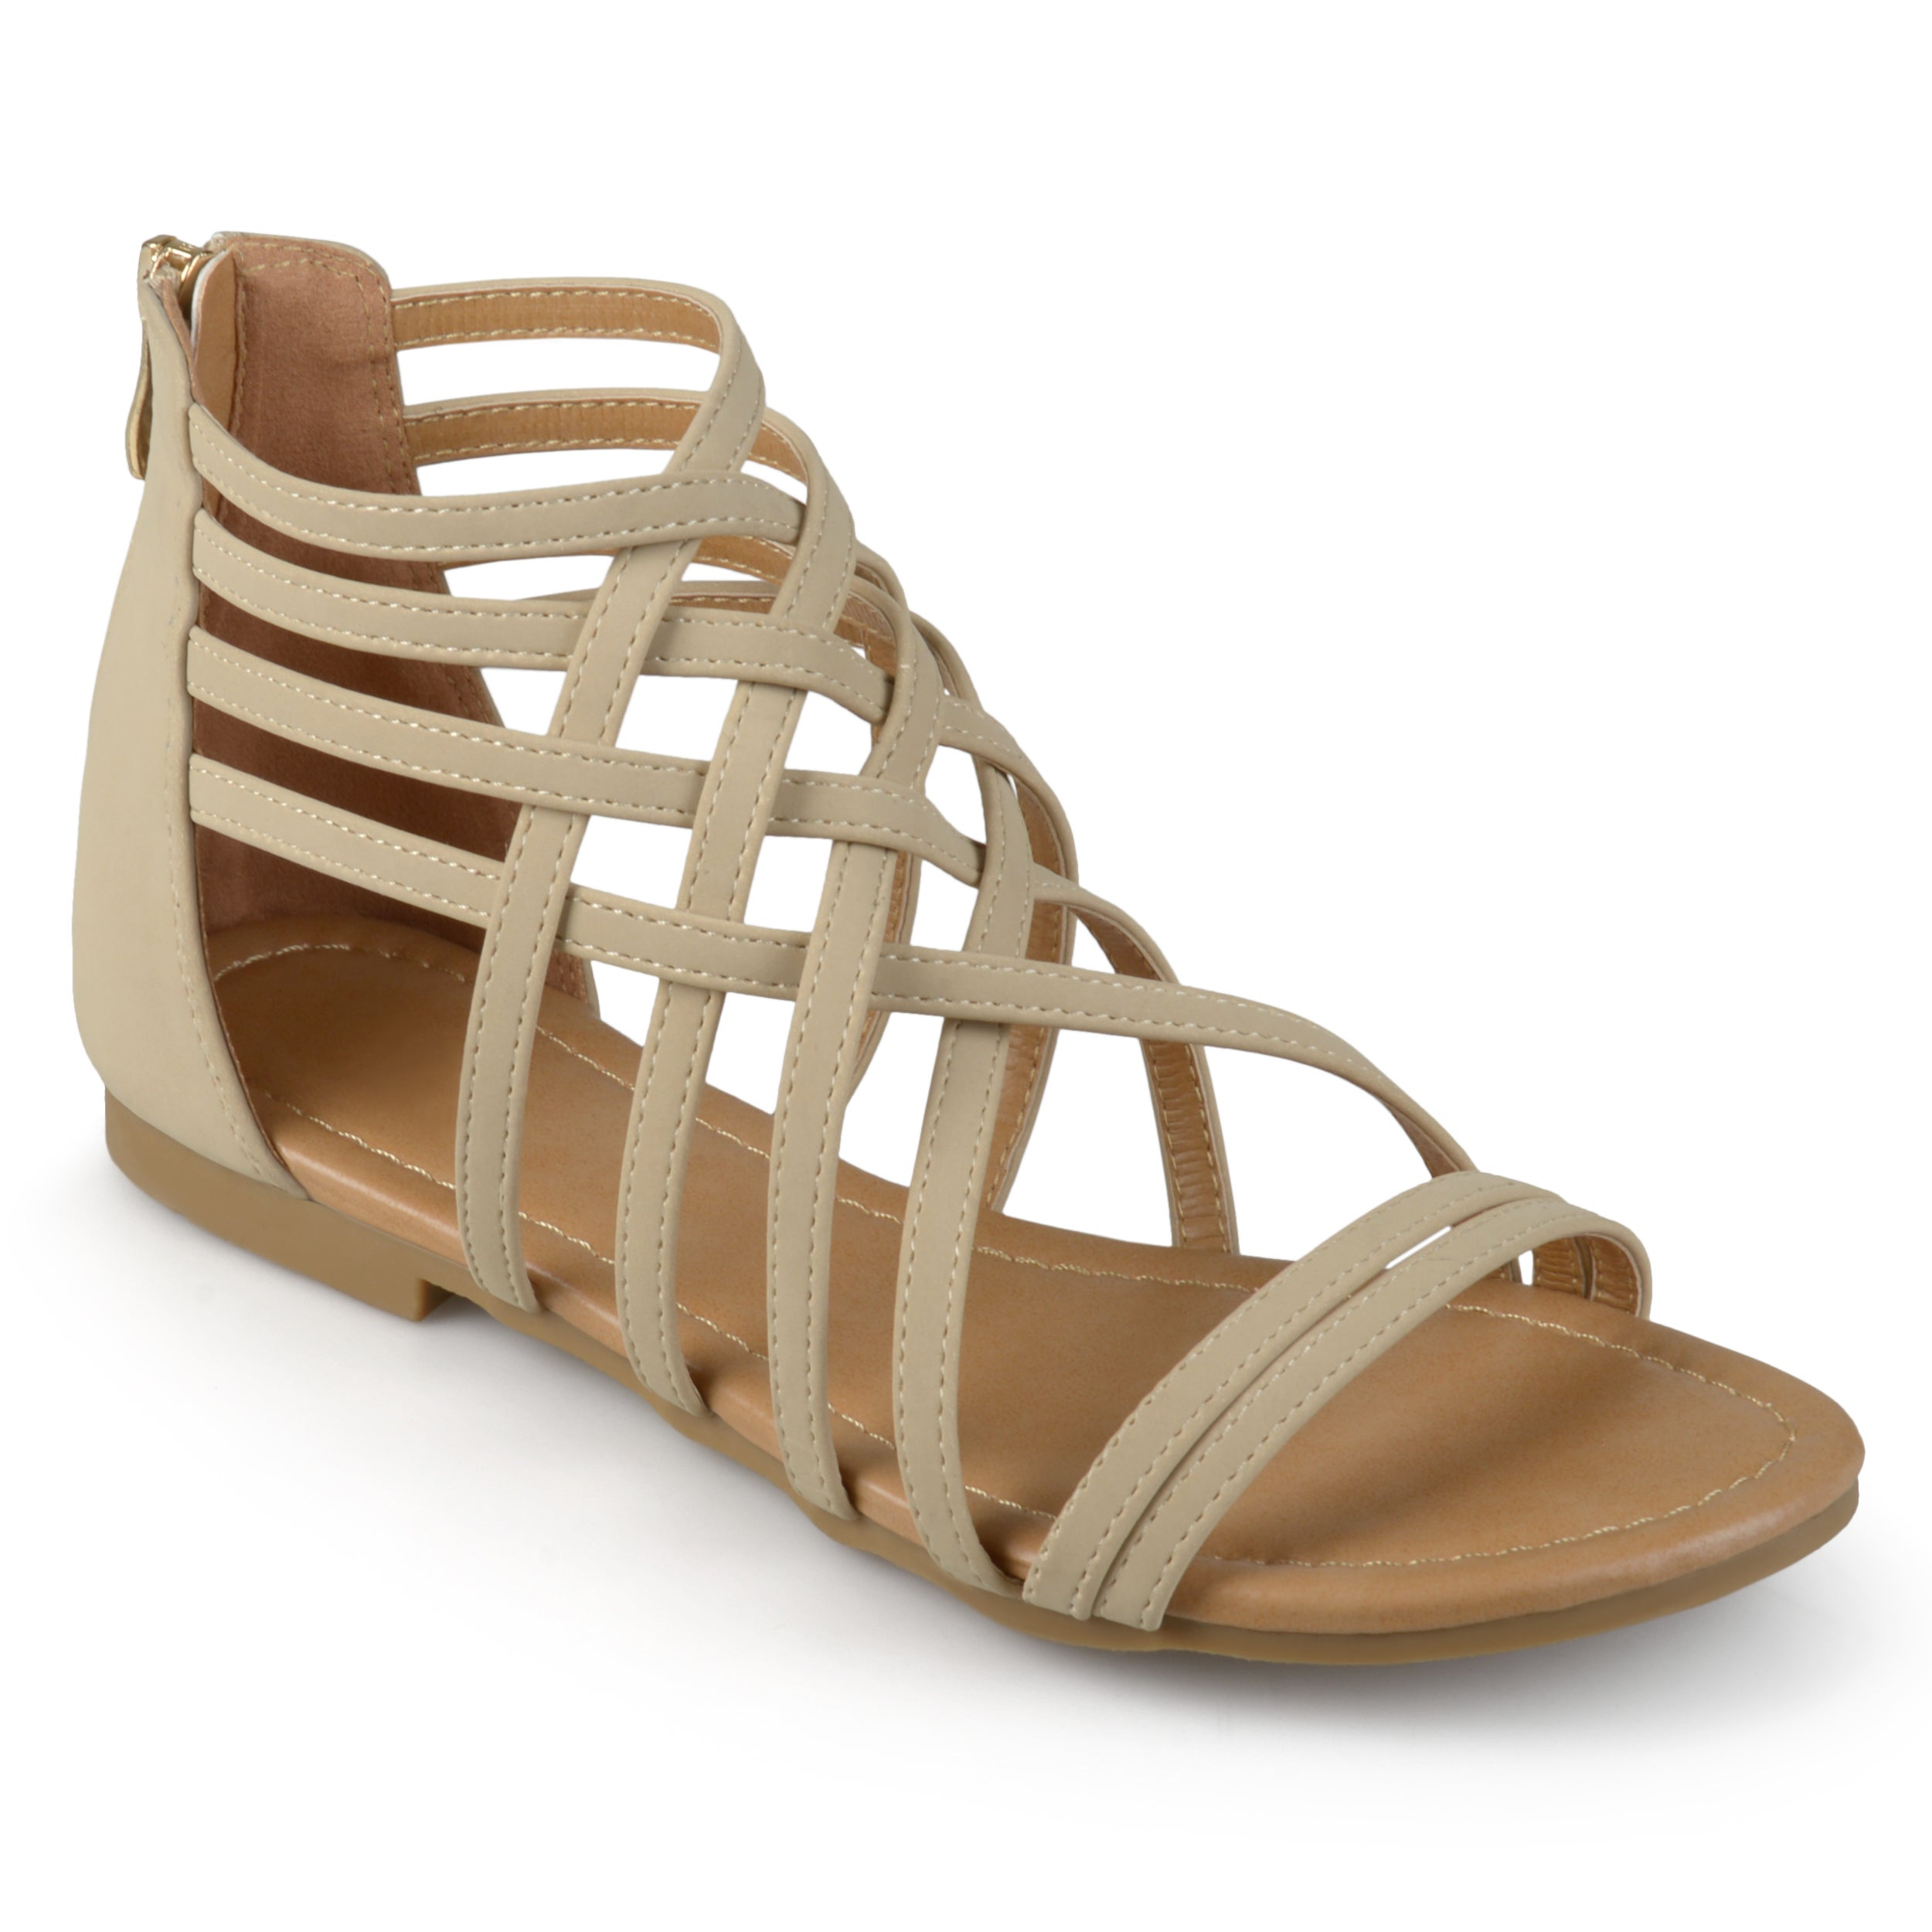 Journee Collection Women's 'Hanni' Flat Gladiator Sandals